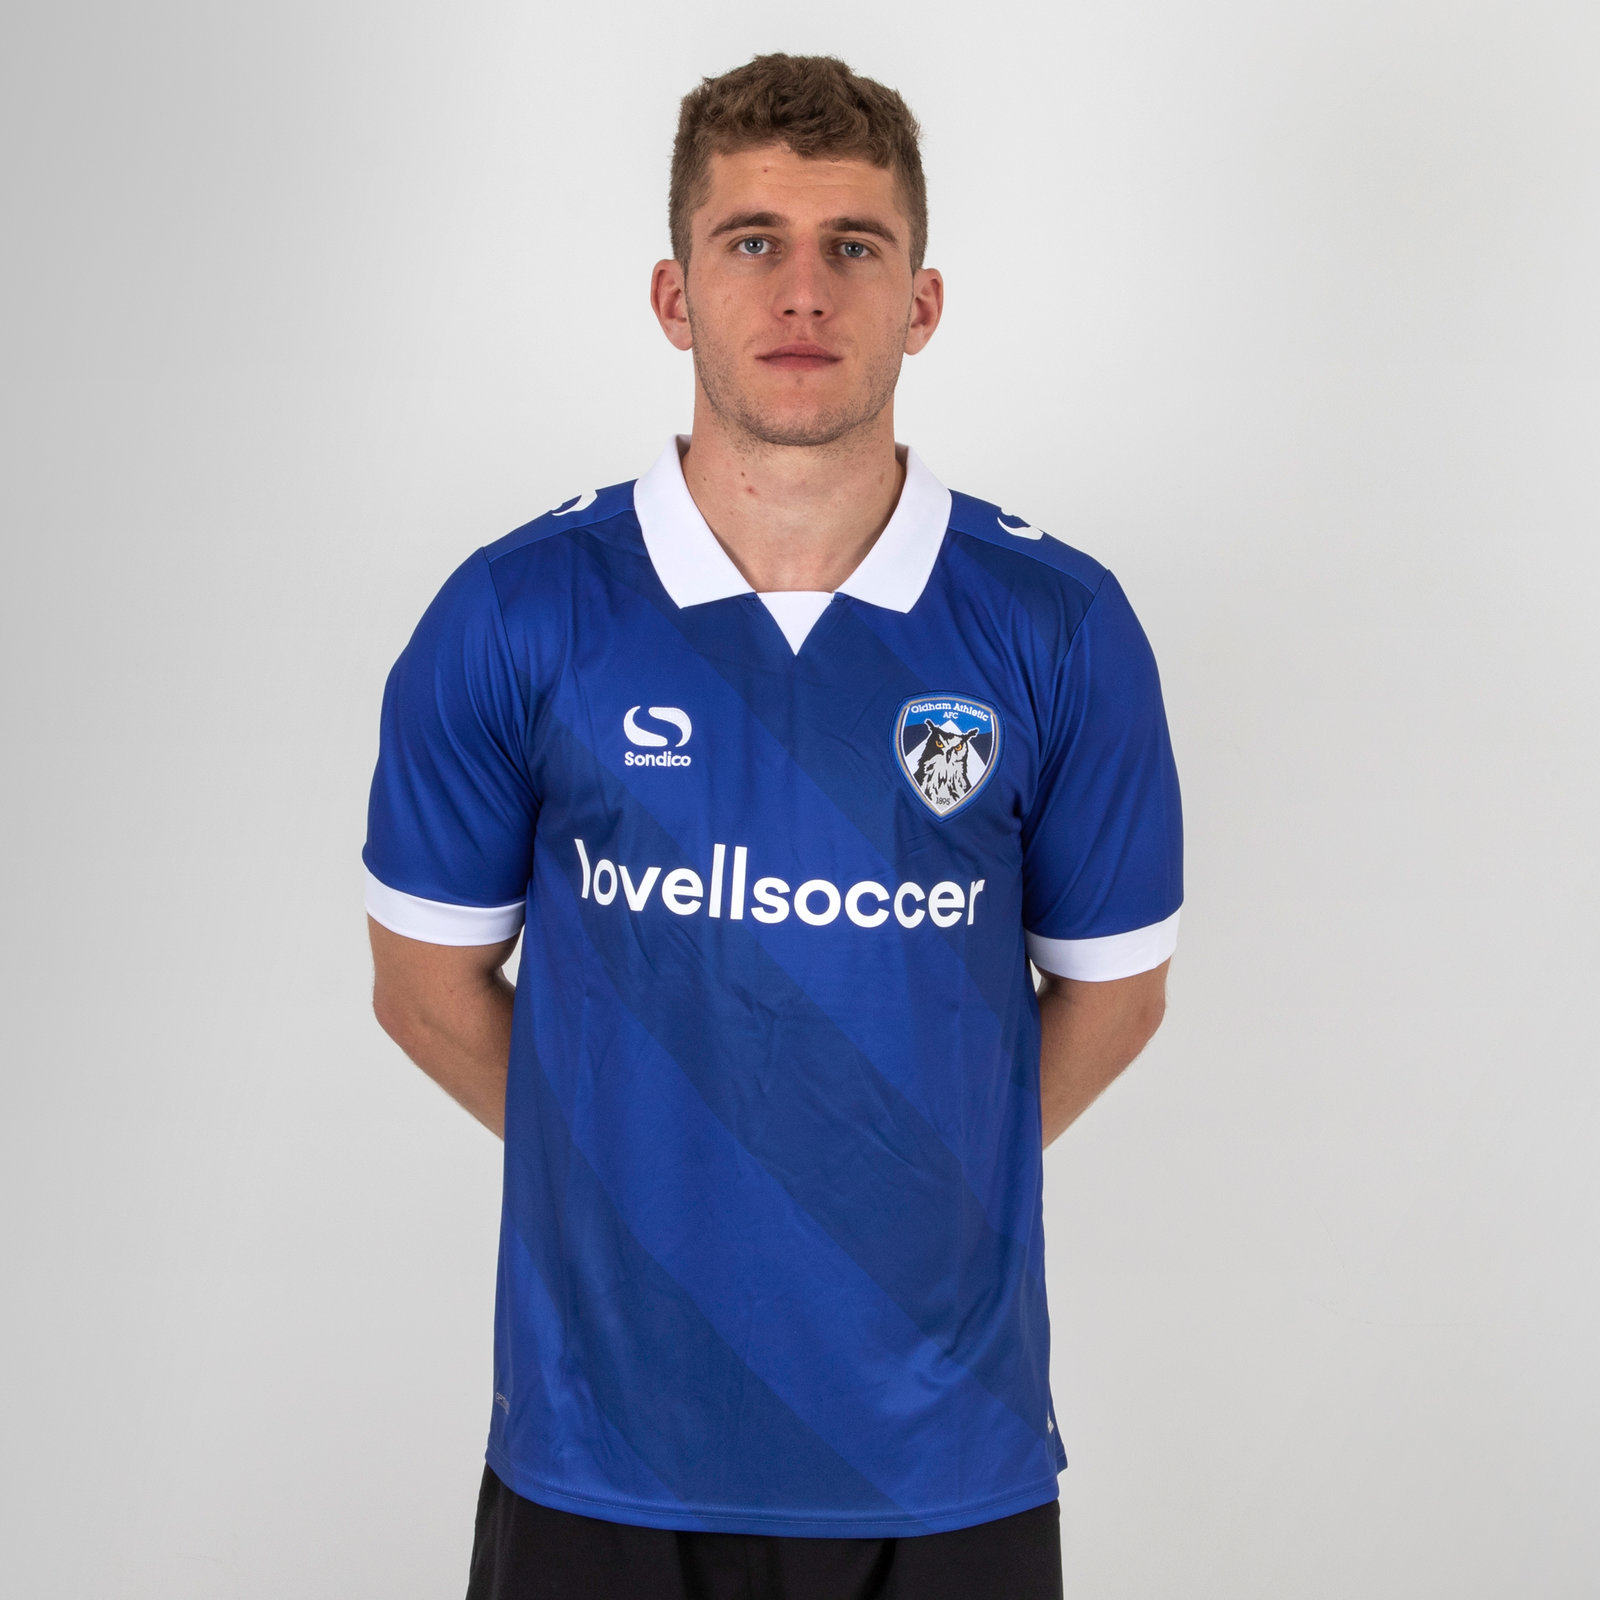 Oldham Athletic 18/19 Home Football Shirt